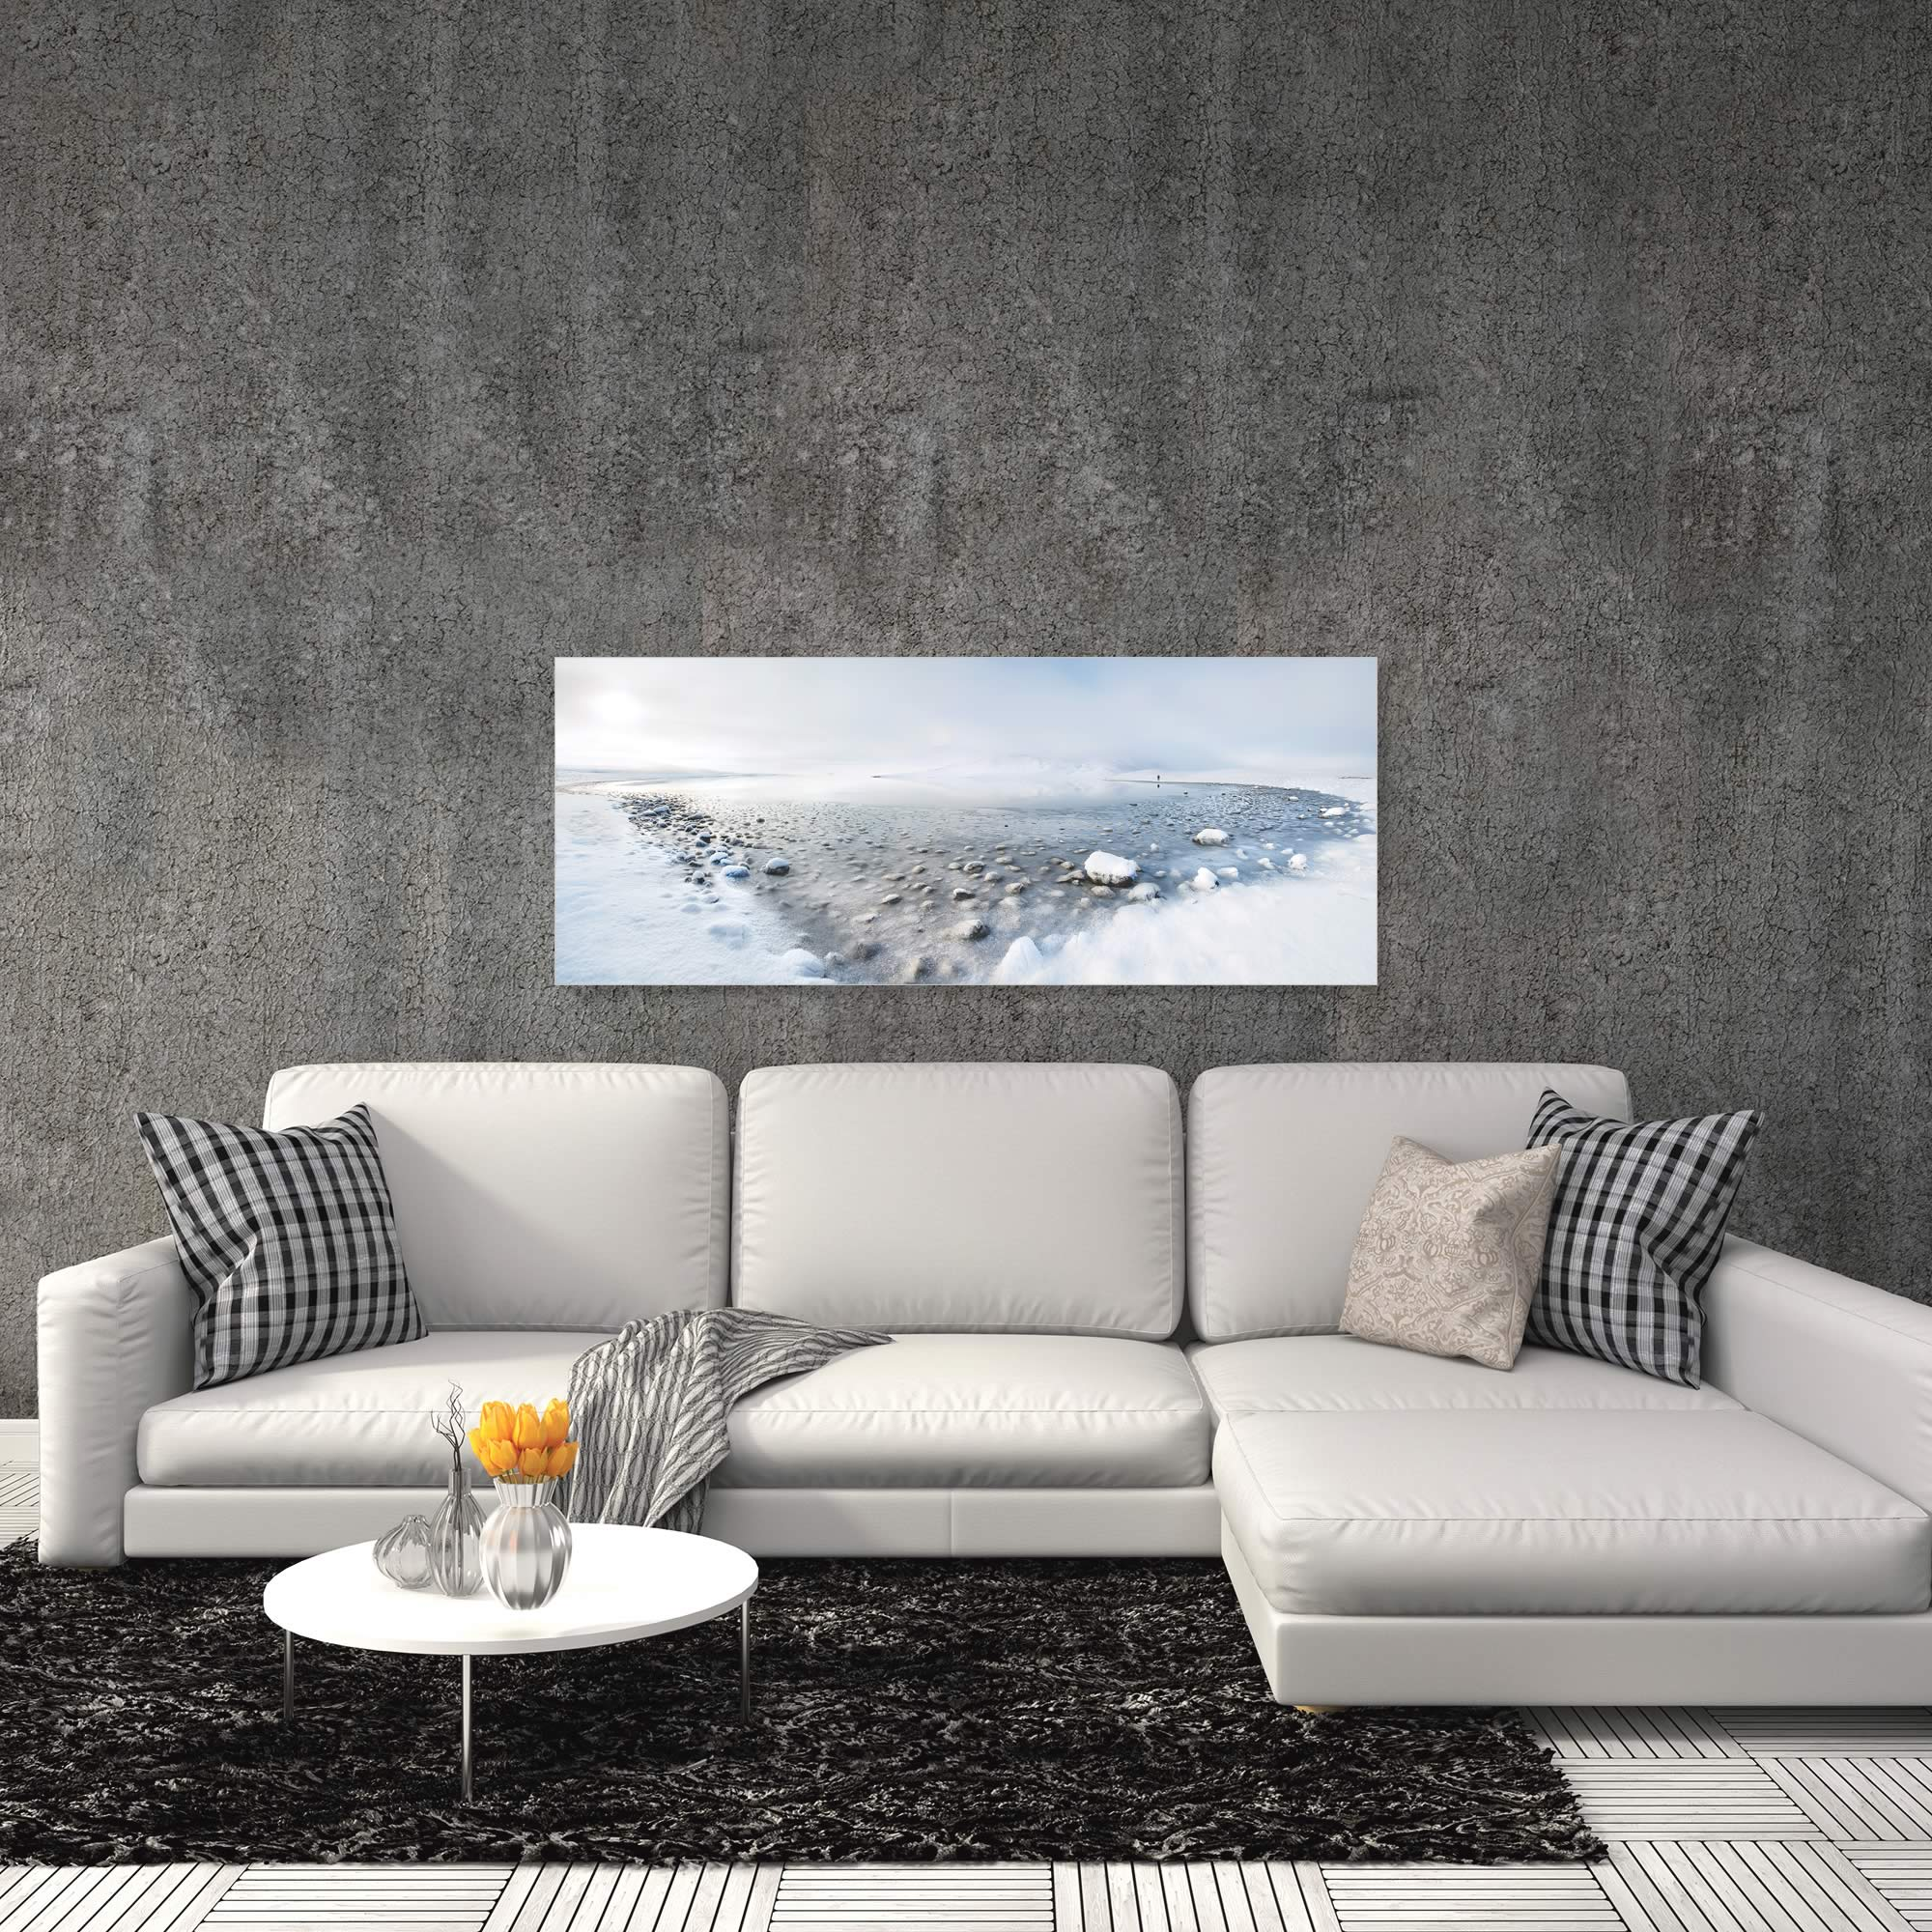 Alone in the Silence by Nicola Molteni - Snowy Landscape Art on Metal or Acrylic - Alternate View 1